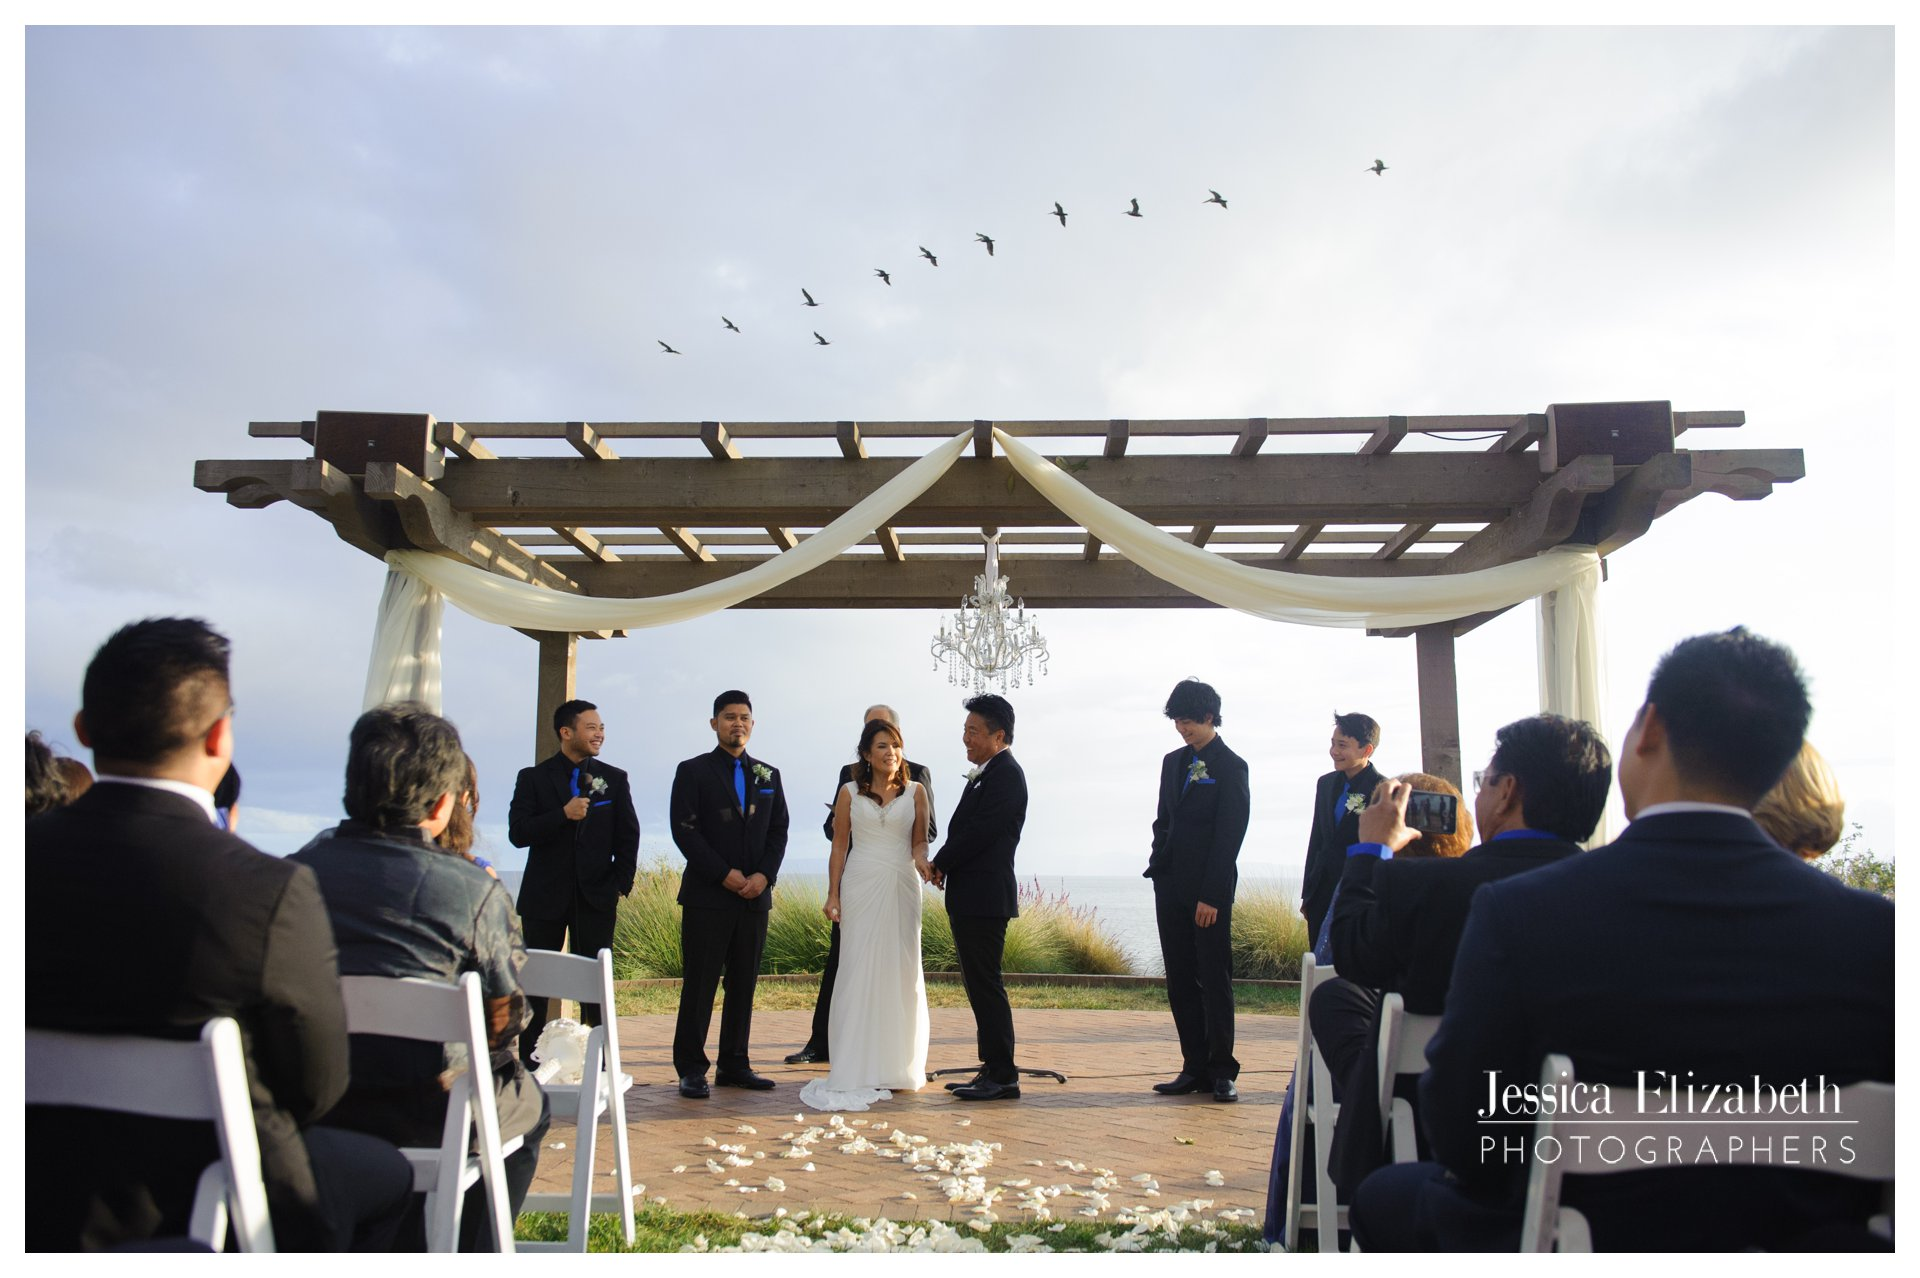 21-Terranea-Palos-Verdes-Wedding-Photography-by-Jessica-Elizabeth-w.jpg